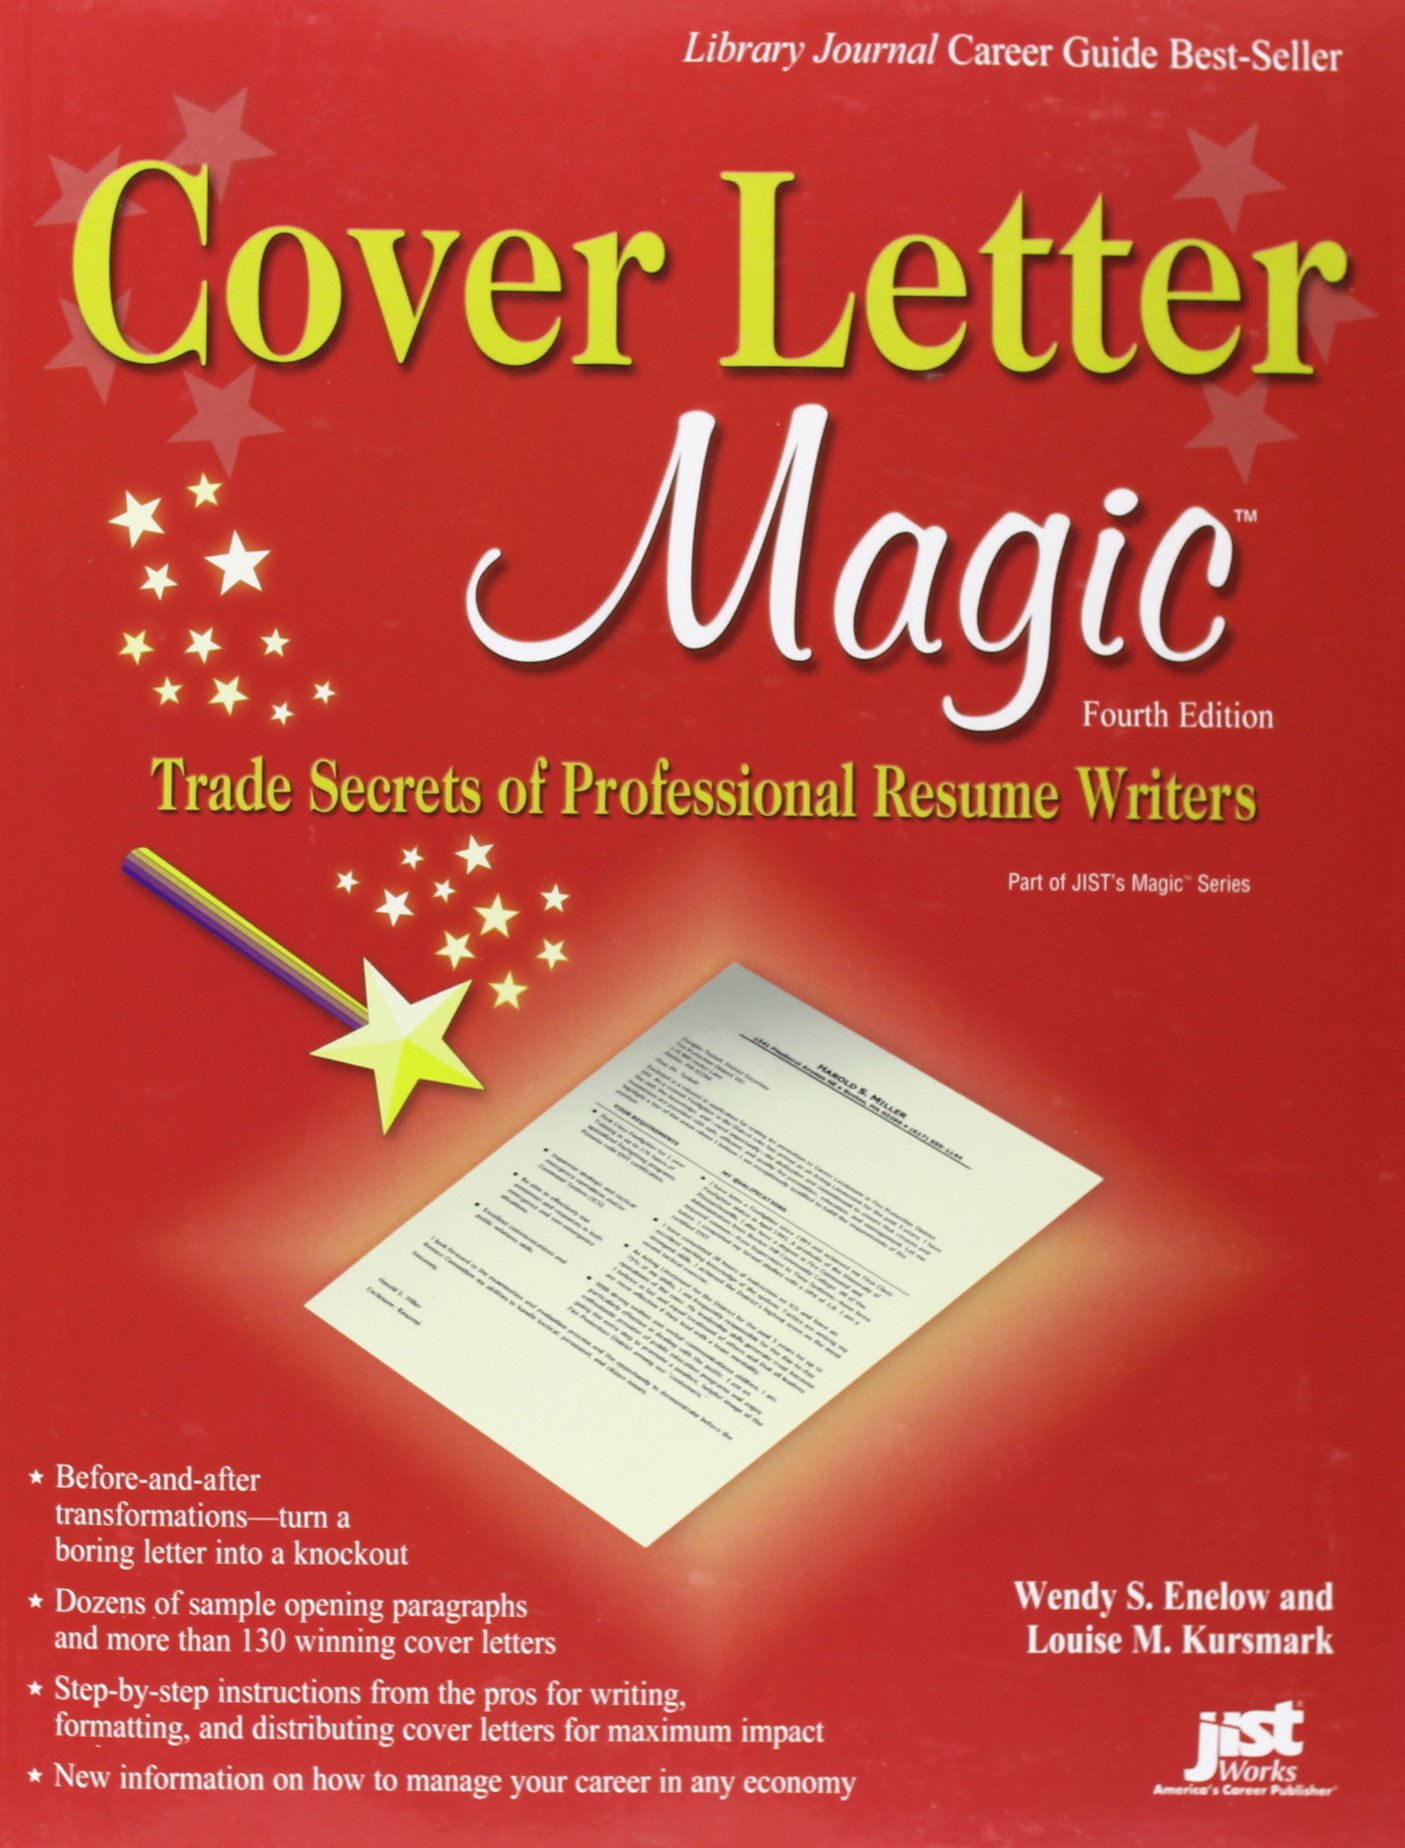 Cover letter magic 4th ed trade secrets of professional resume cover letter magic 4th ed trade secrets of professional resume writers wendy s enelow louise m kursmark 9781593577353 amazon books madrichimfo Image collections